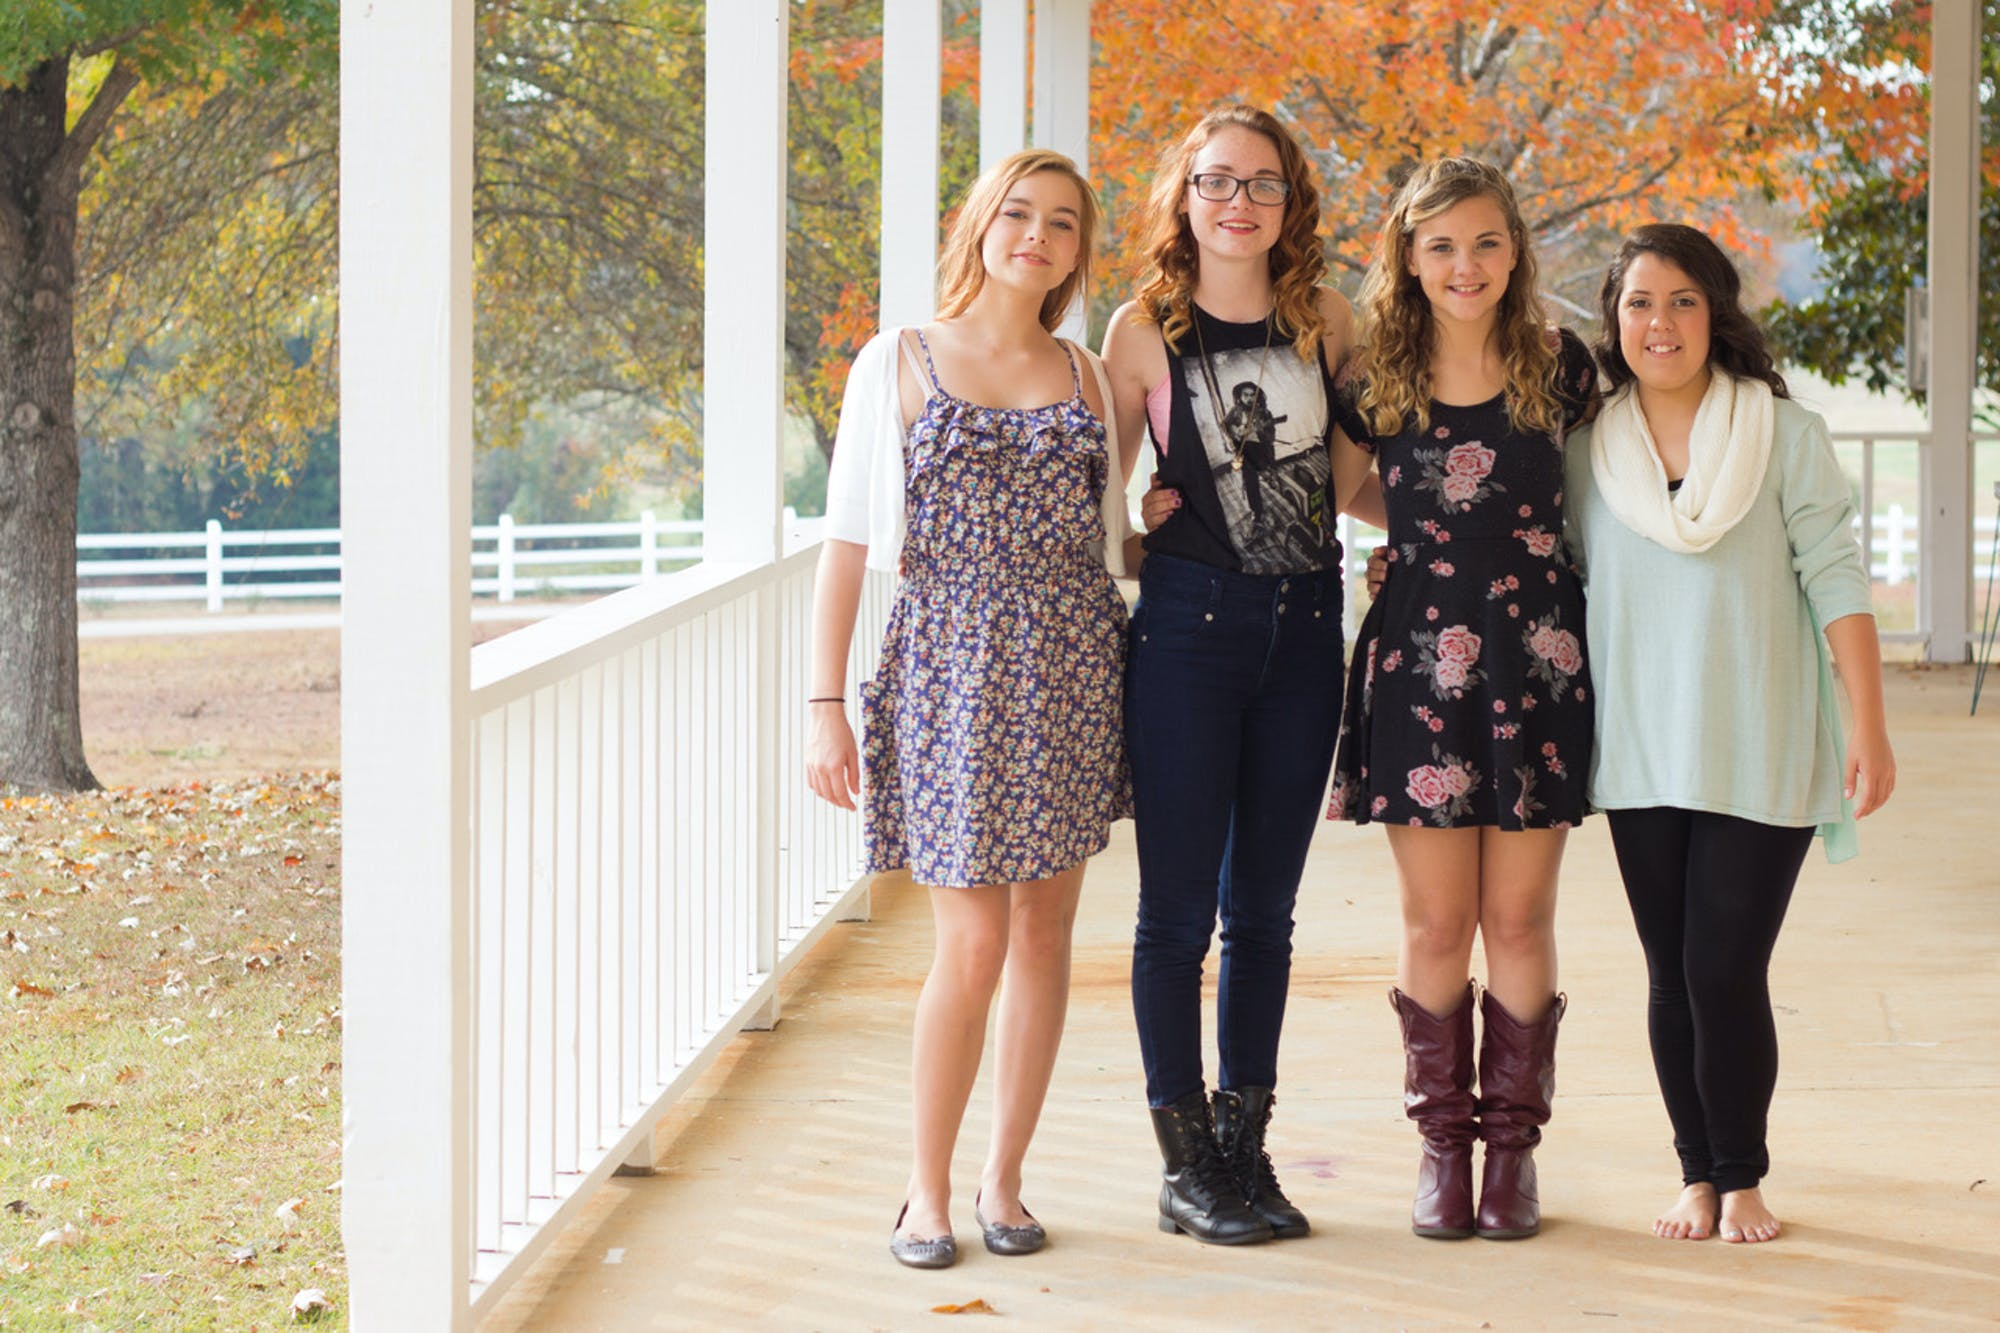 Camp Hill farm serves as home for mistreated young women